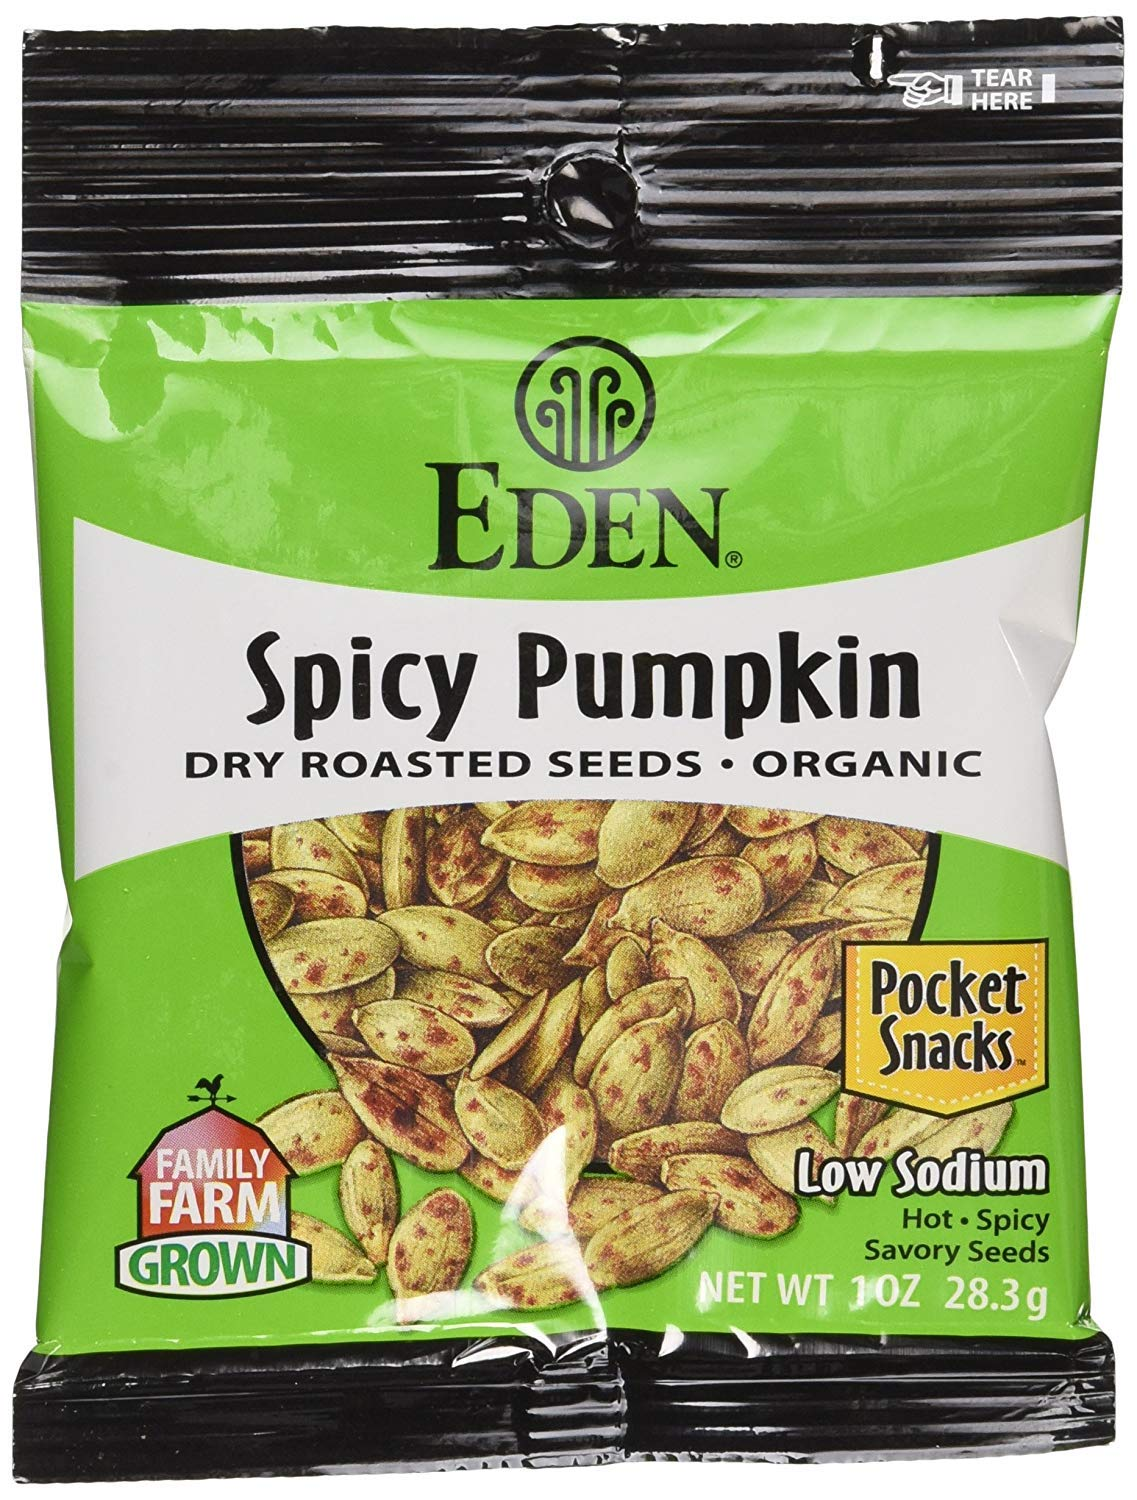 Eden Organic Spicy Pumpkin Seeds, Dry Roasted, Pocket Snacks, 1 Ounce (Pack of 24) by Eden